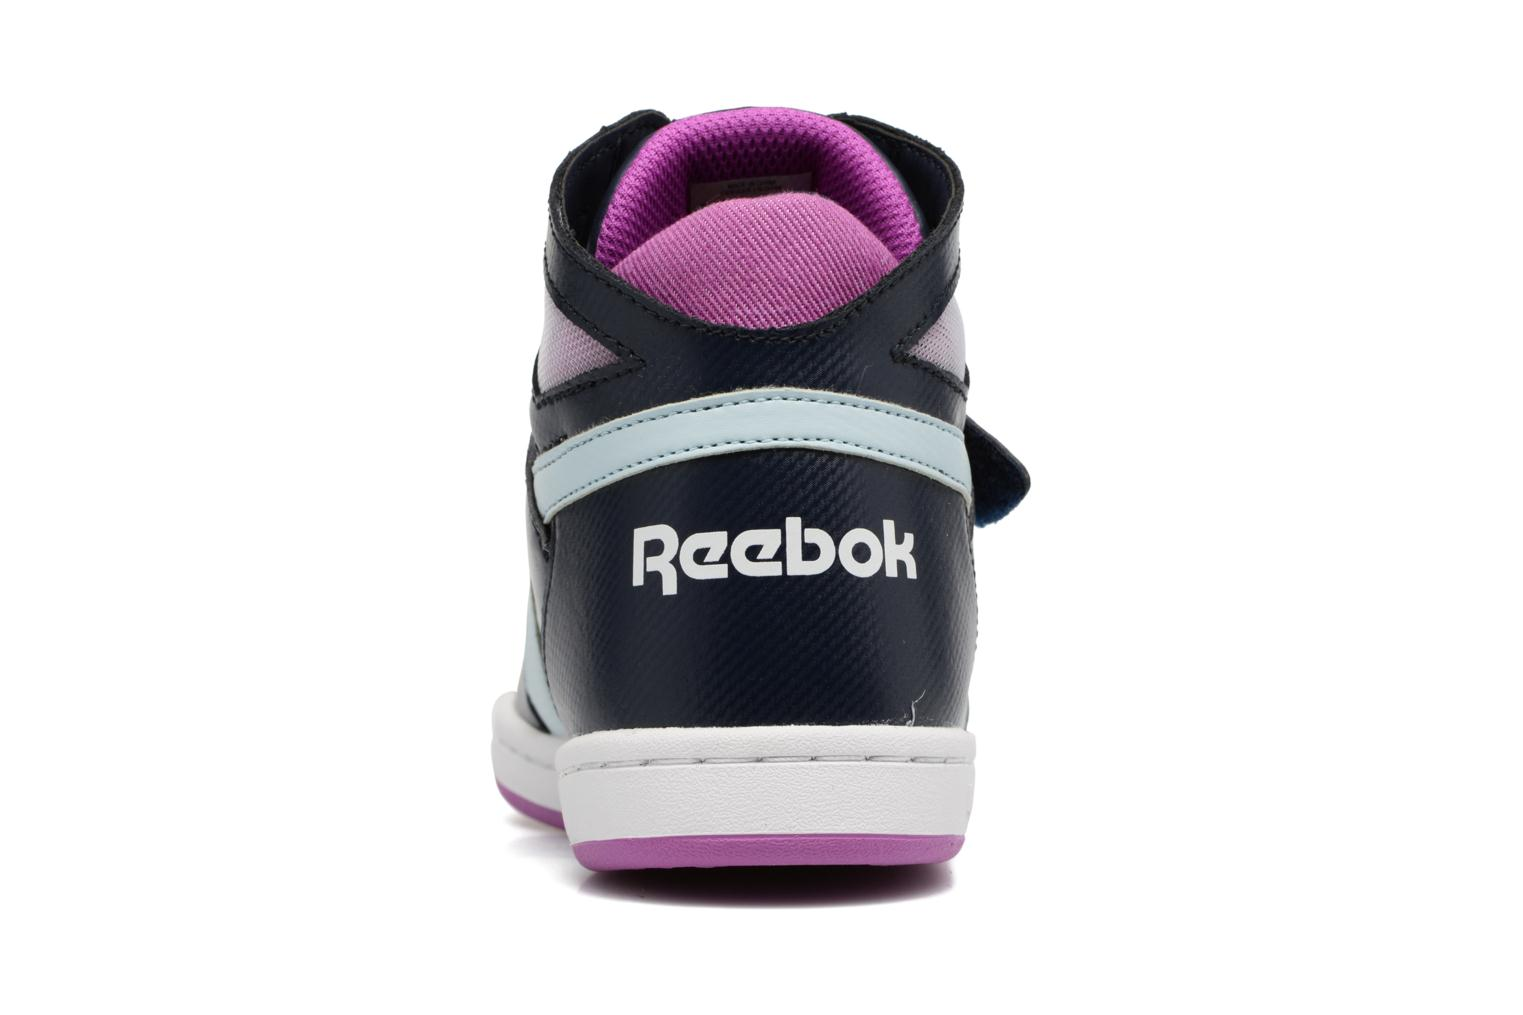 Reebok Mission 3.0 Collegiate Navy/Vicious Violet/Fresh Blu